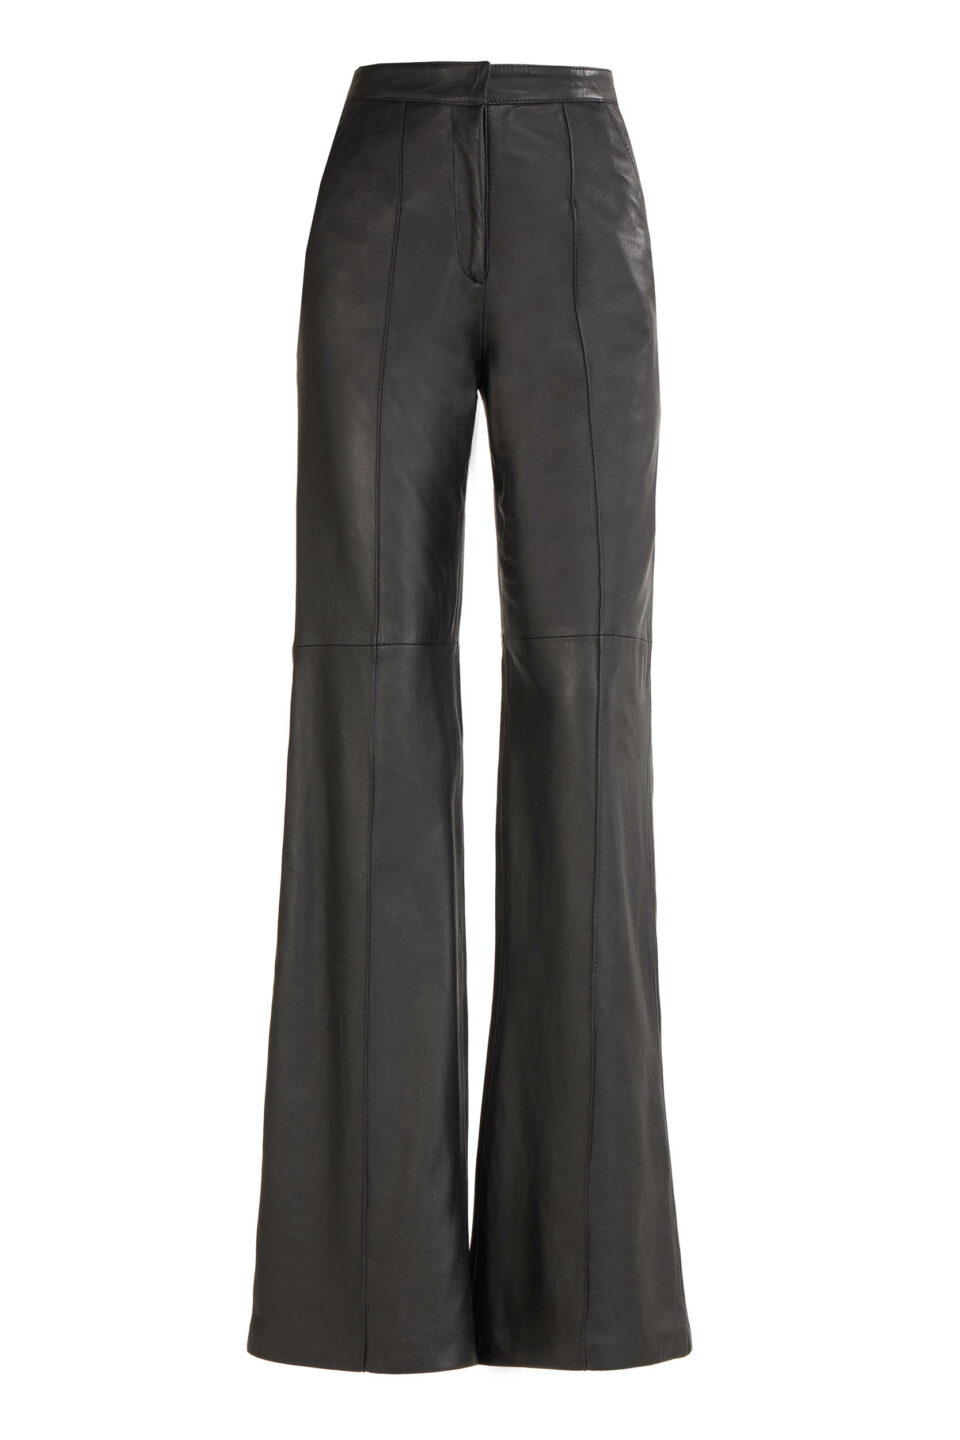 Denie FW2190 Black Lamb-Skin leather trousers with pintuck seams